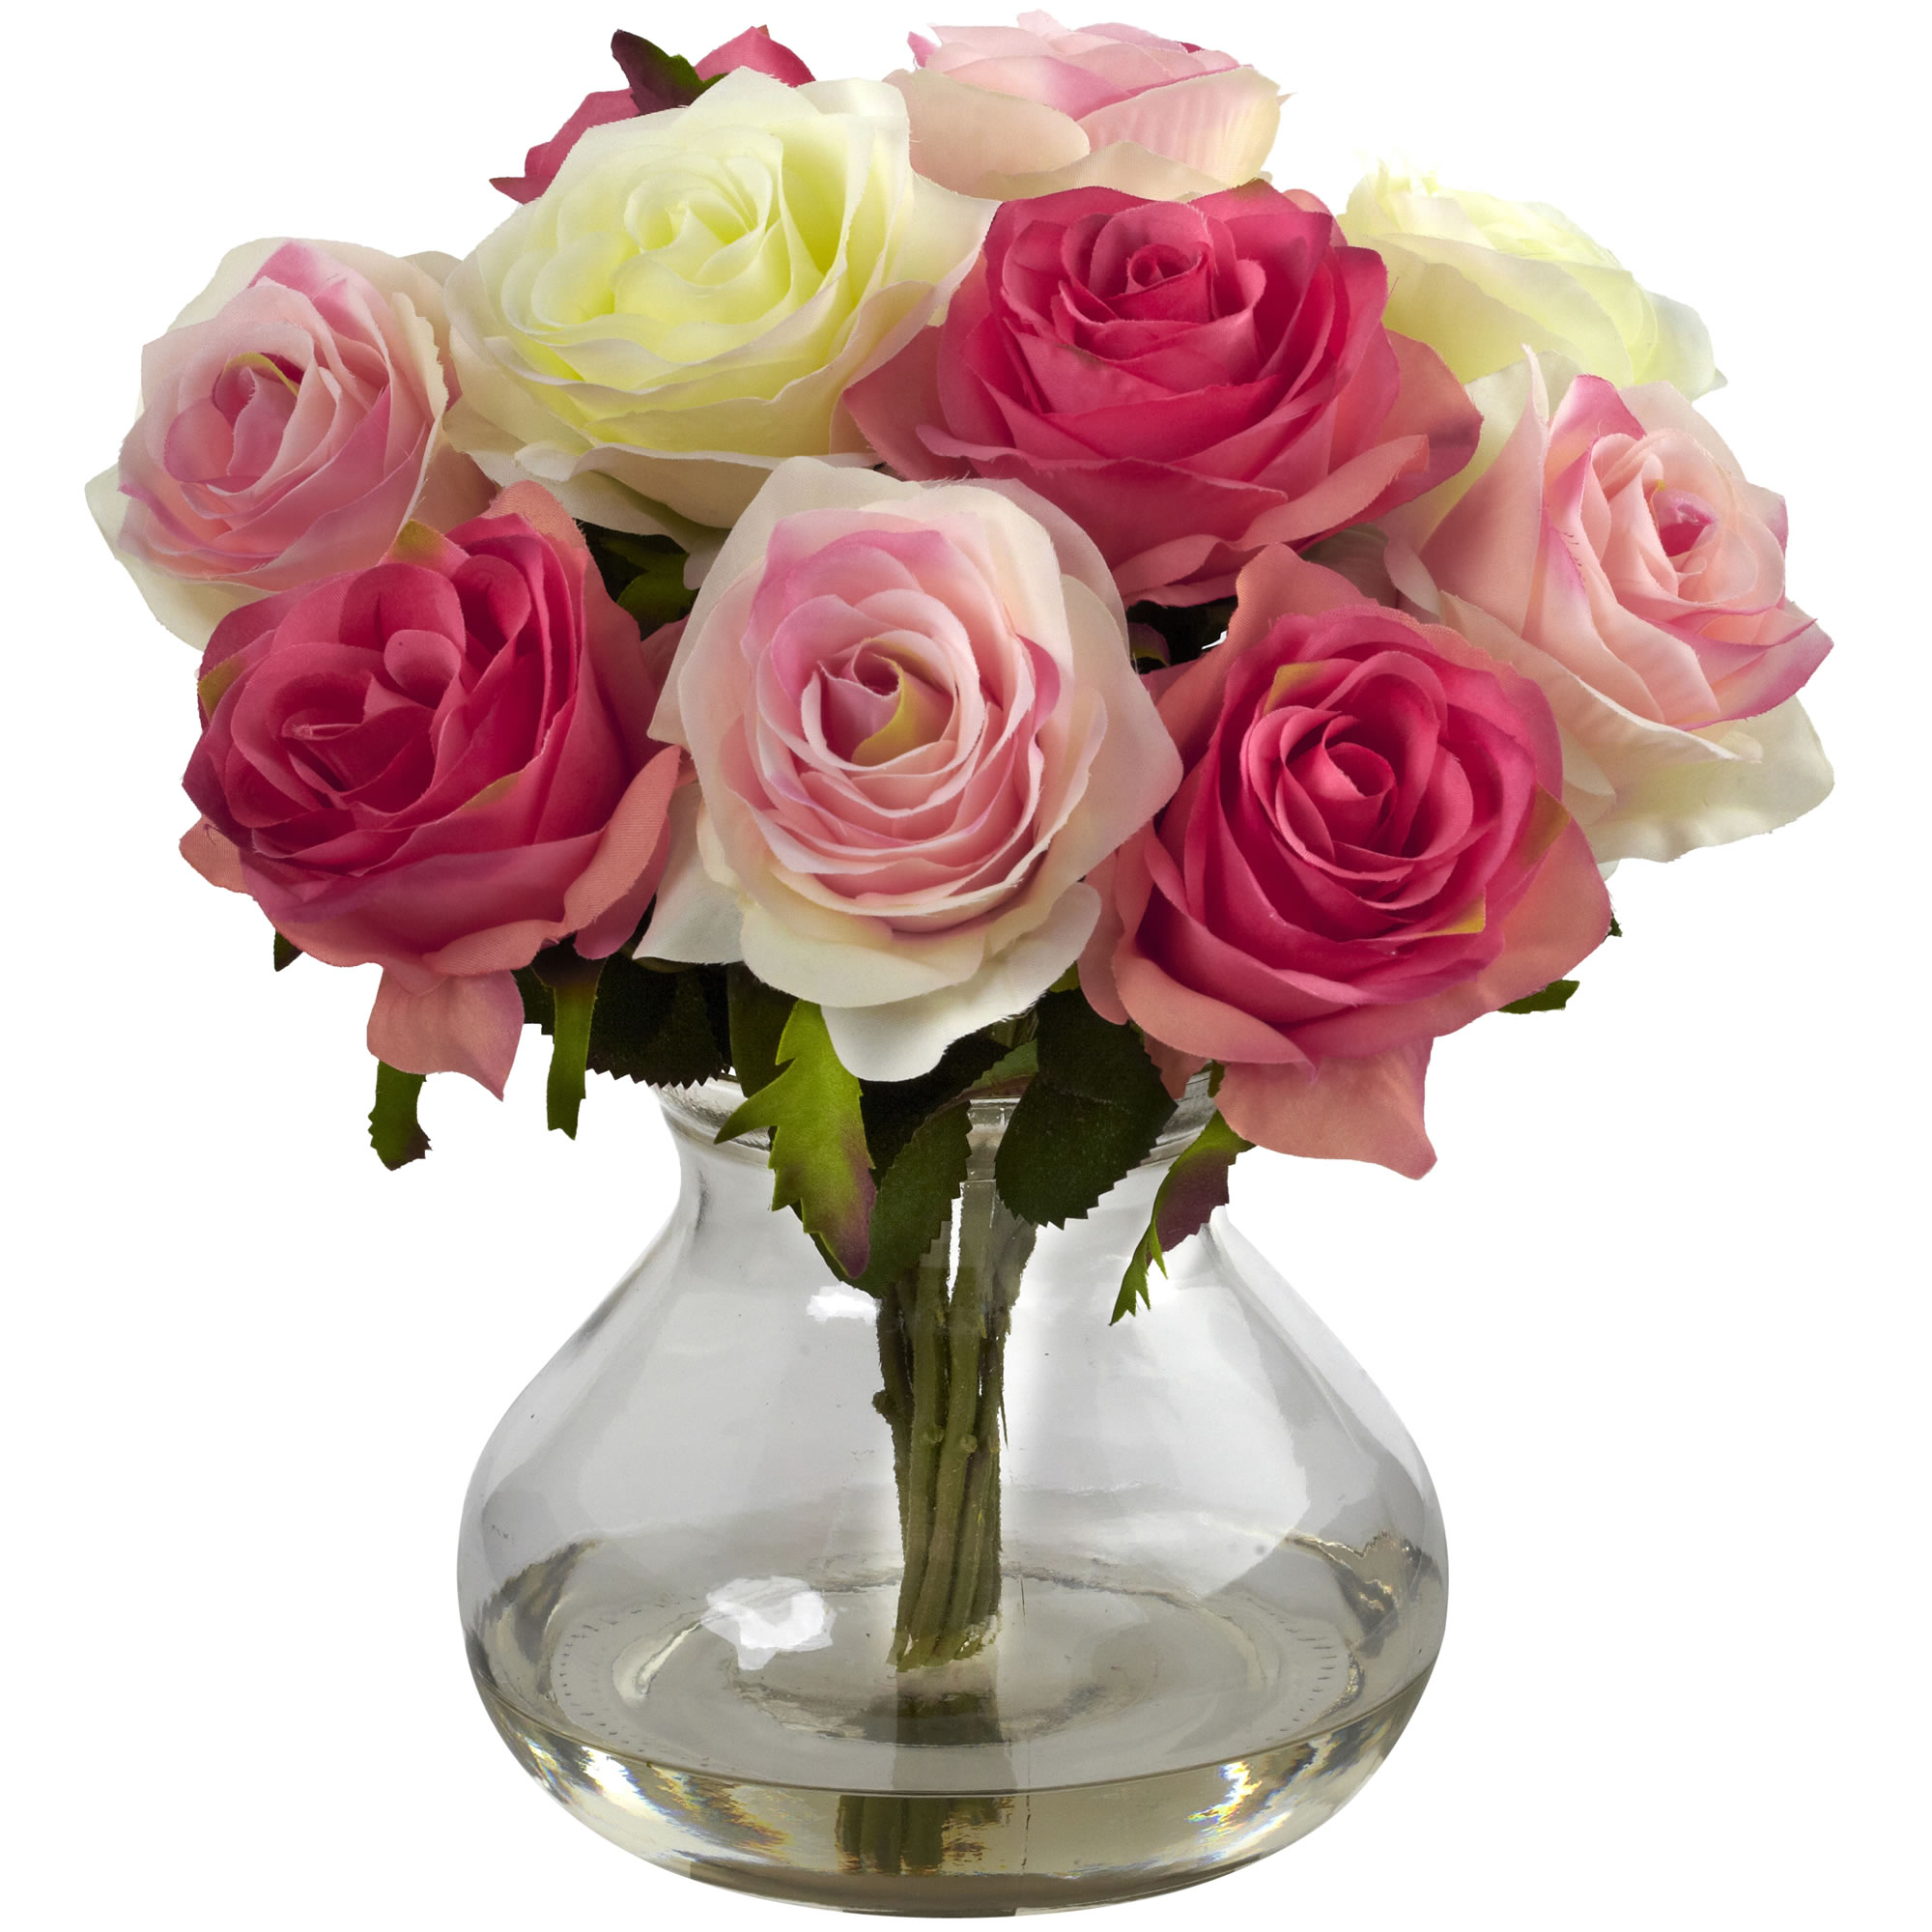 Artificial 11 roses bouquet flowers floral arrangement in faux image is loading artificial 11 034 roses bouquet flowers floral arrangement izmirmasajfo